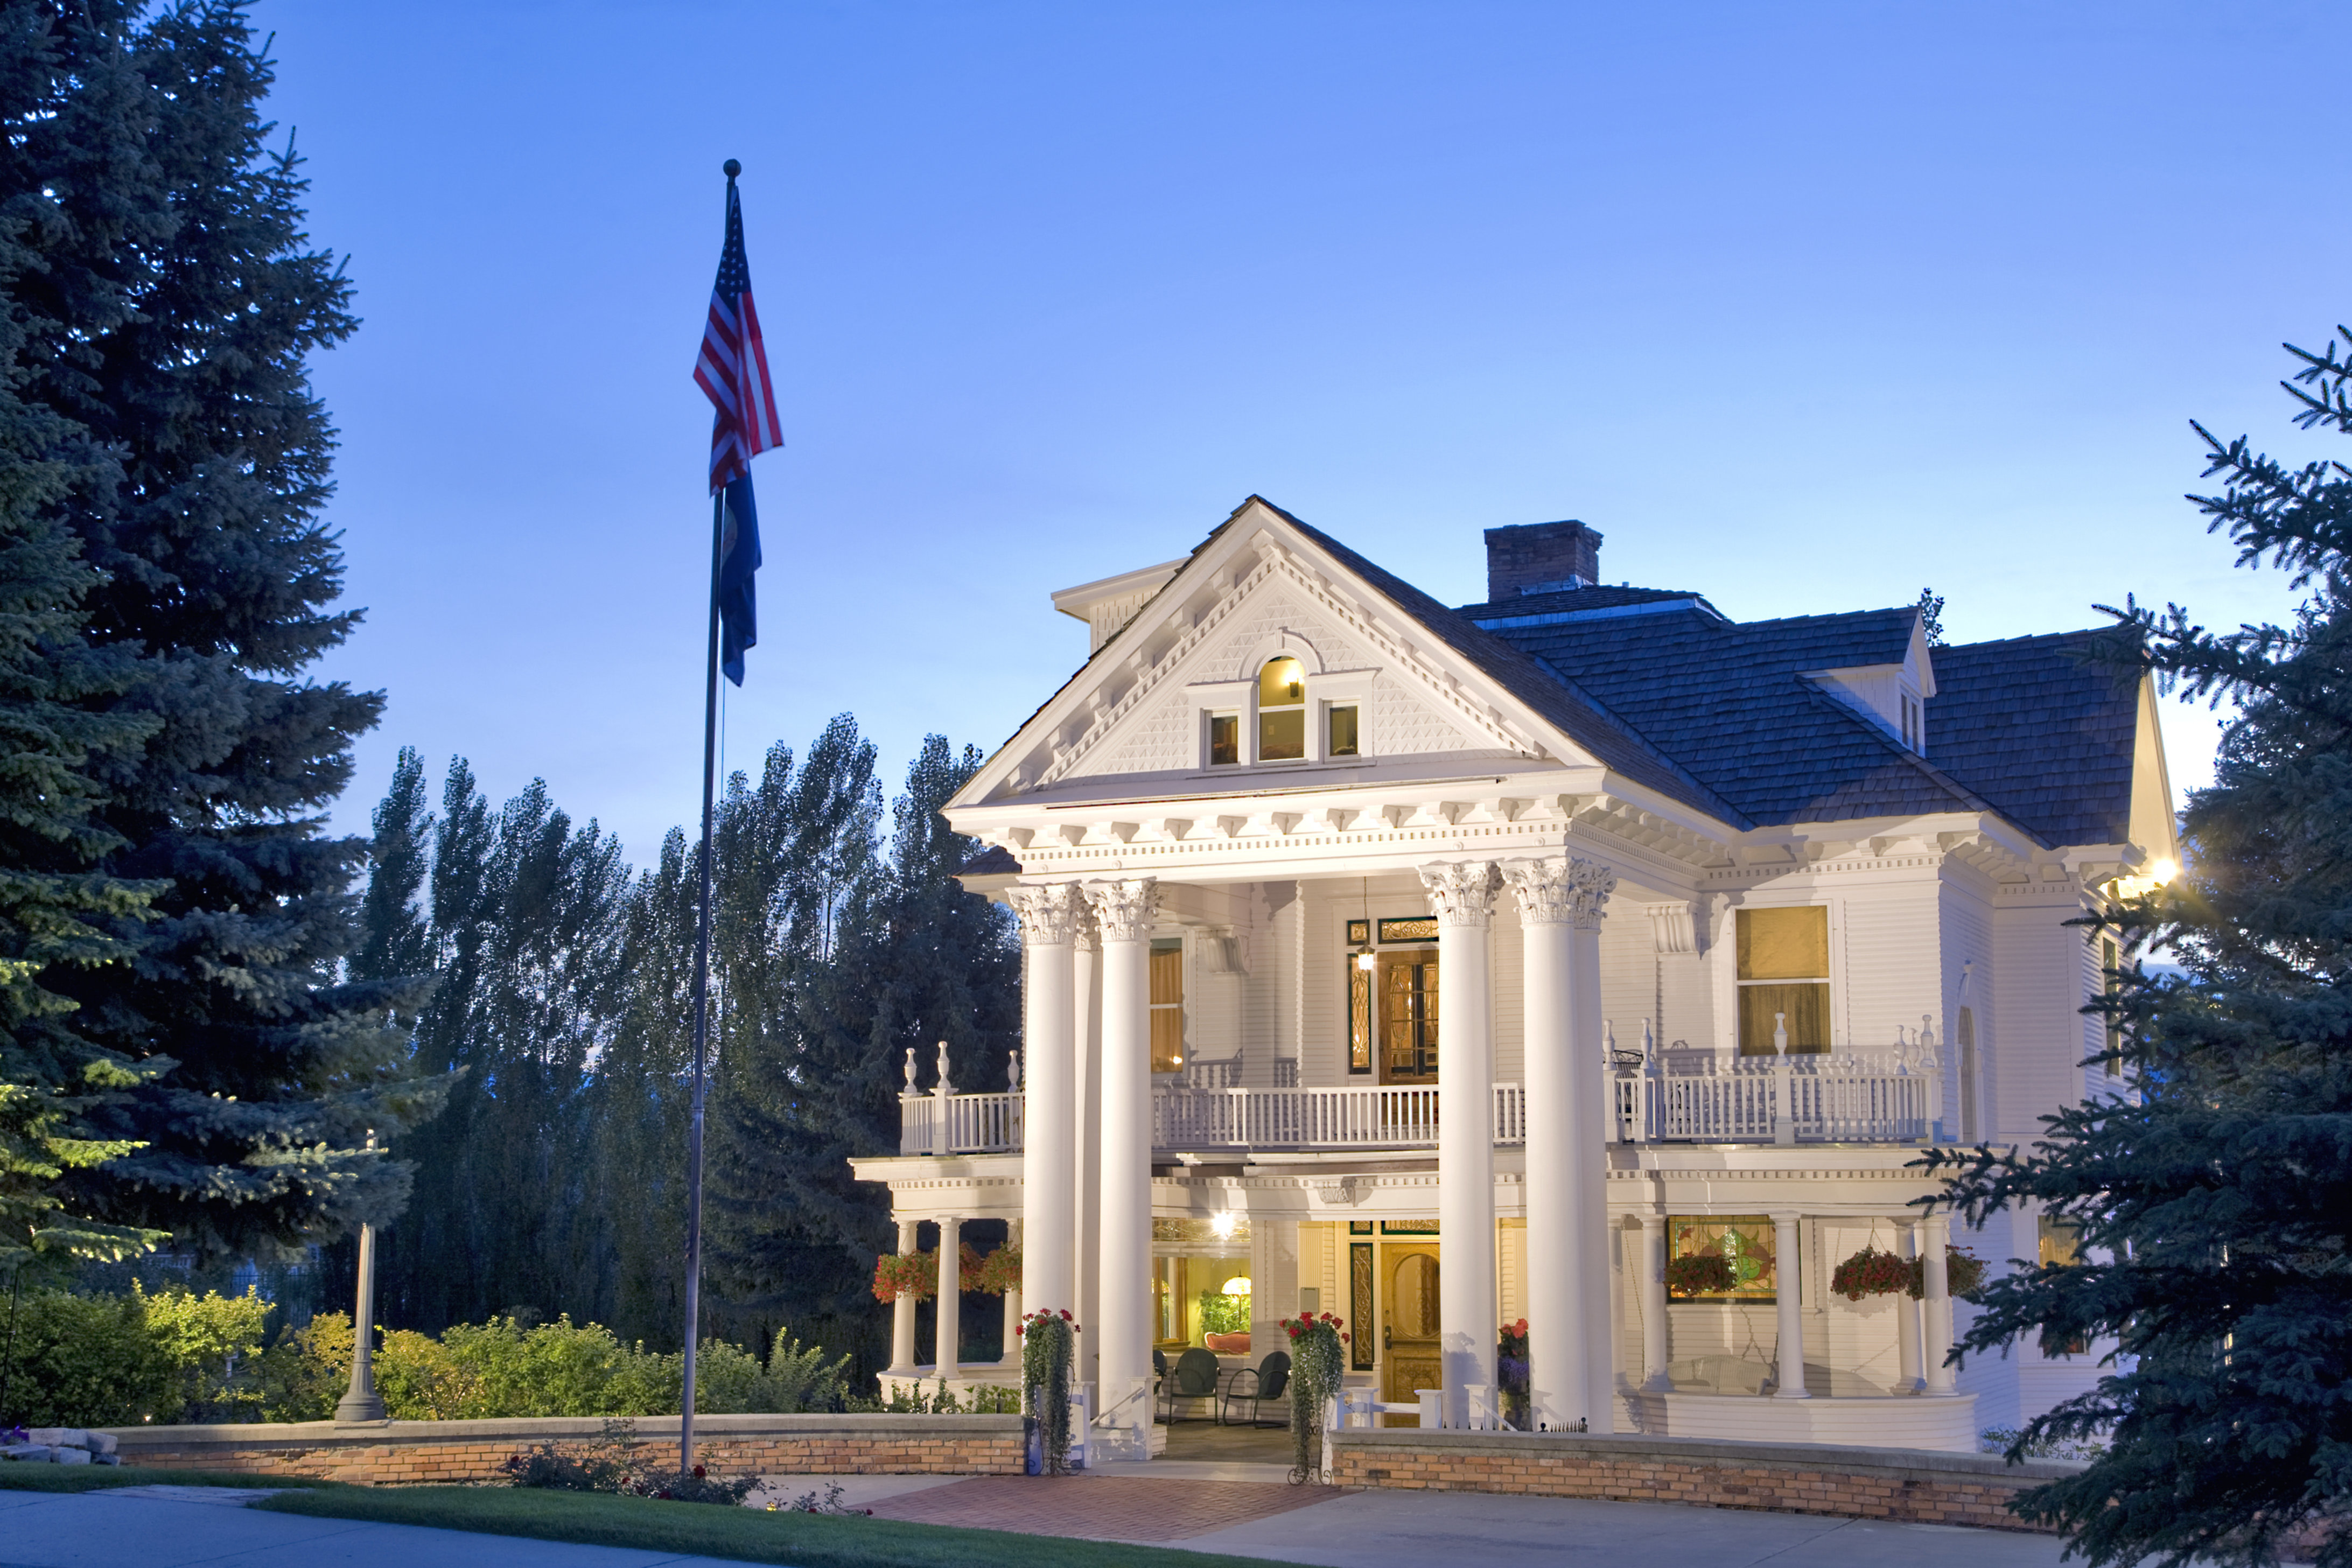 A large white building at Gibson Mansion Bed and Breakfast.